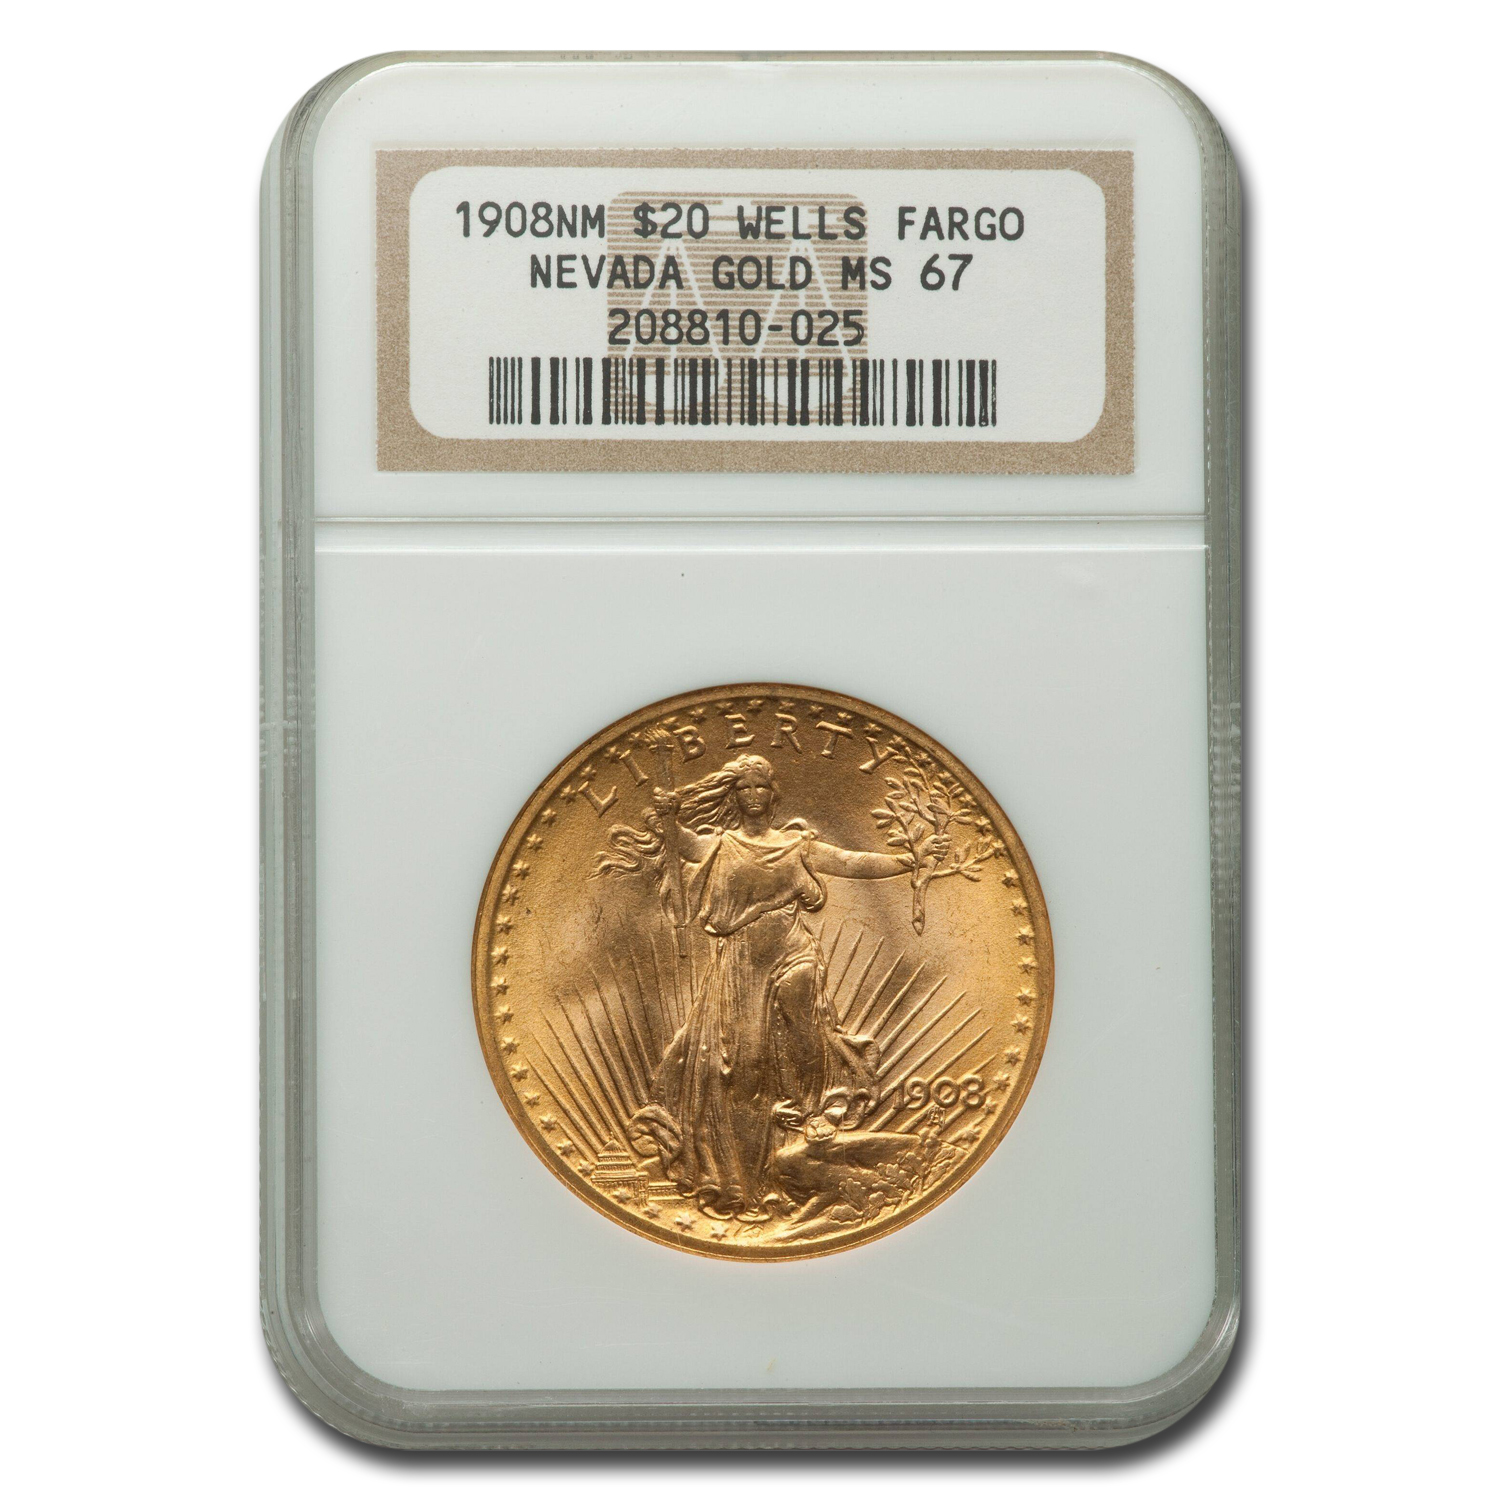 1908 $20 St. Gaudens Gold No Motto MS-67 NGC (Wells Fargo)